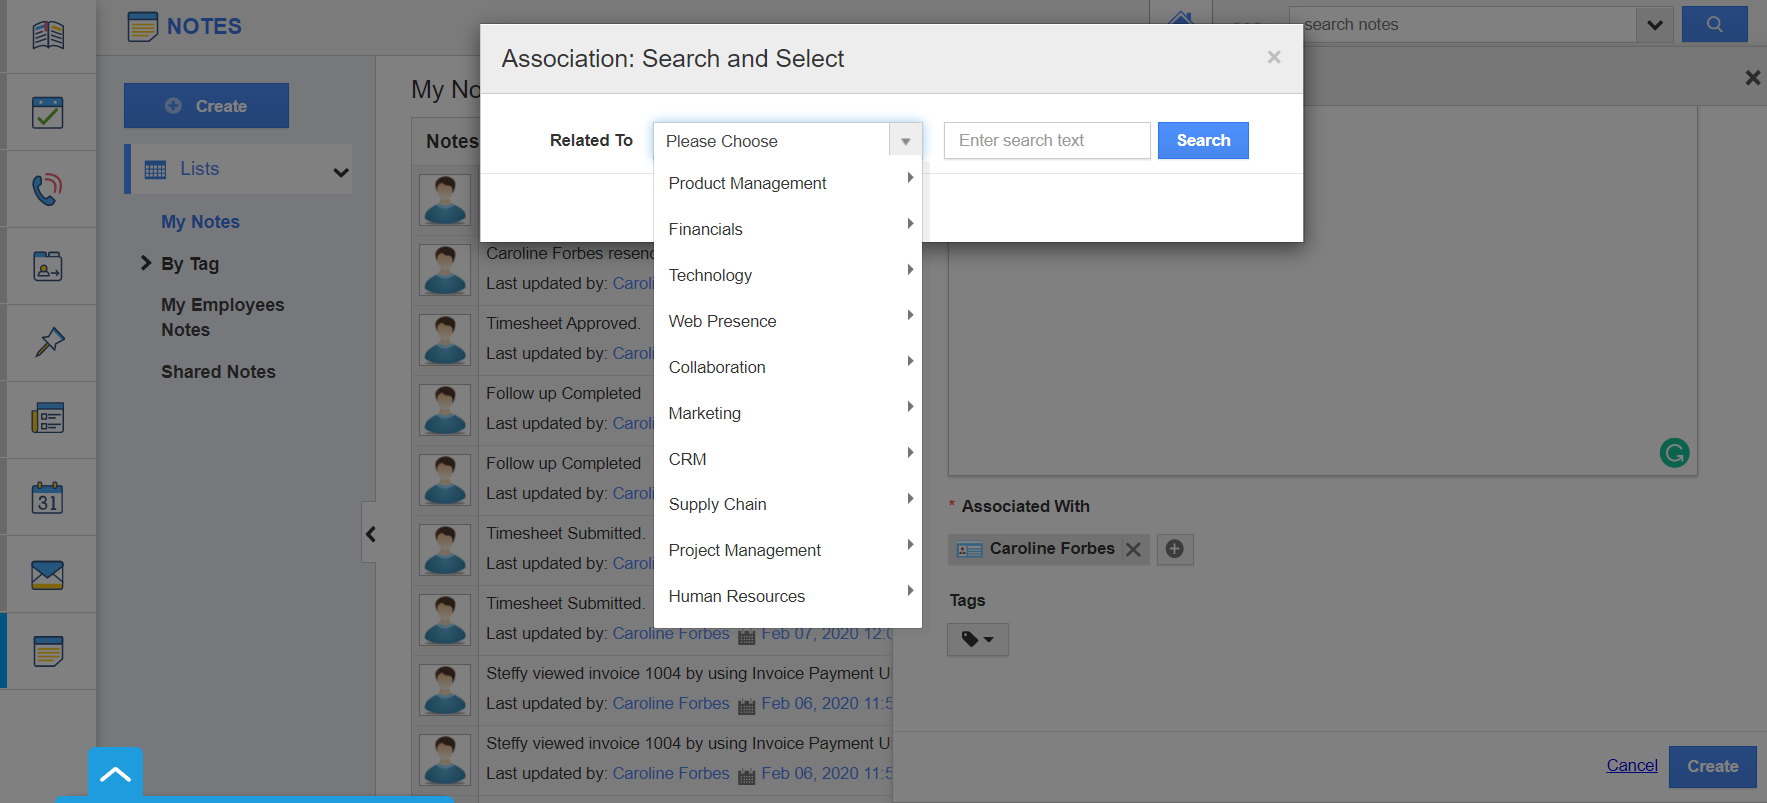 Search Association